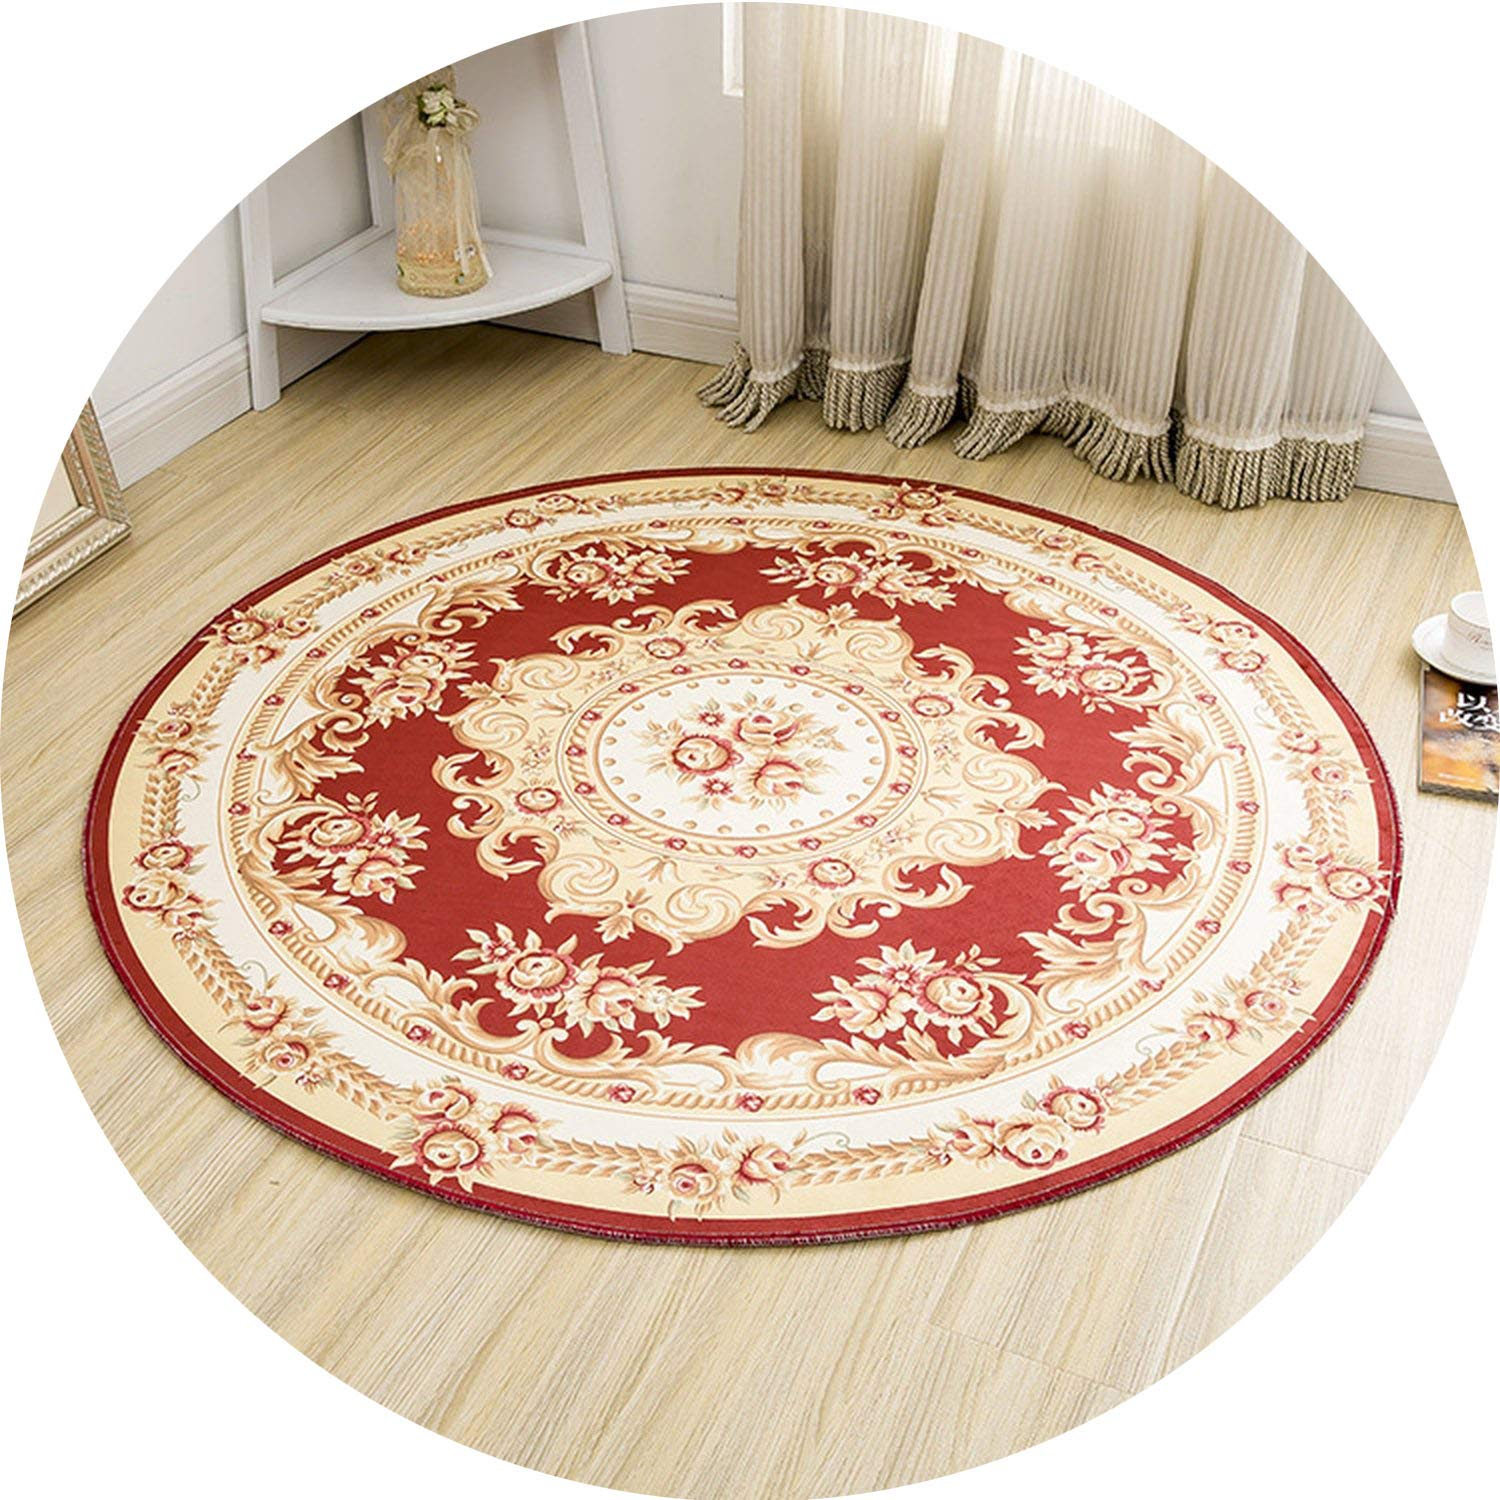 Round Jacquard Countryside Carpets for Living Room Flower Bedroom Rugs and Carpets Computer Chair Floor Mat Cloakroom Area Rug,1,100cm Diameter by Ting room